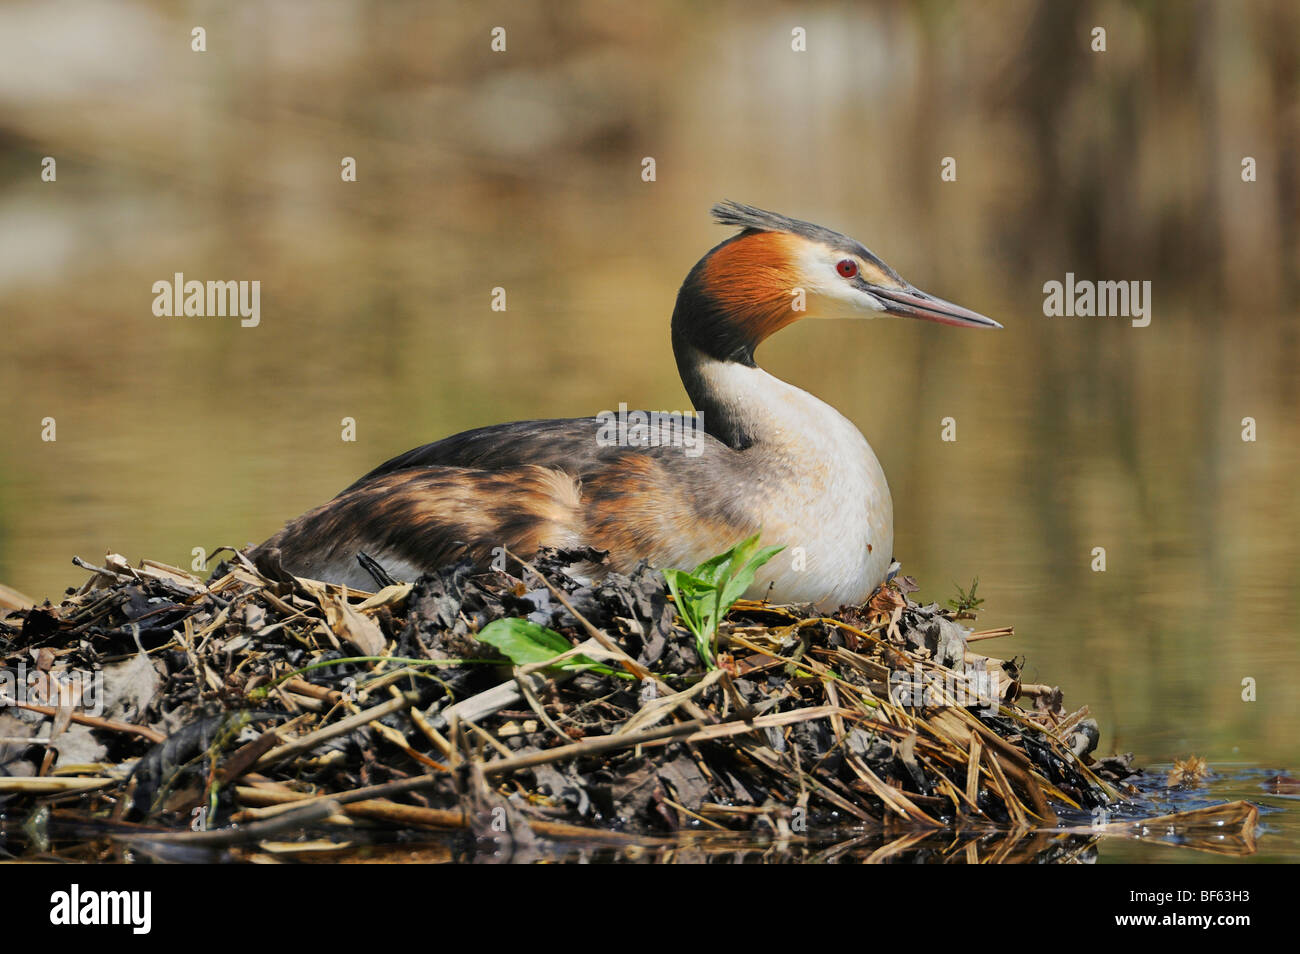 Great-crested Grebe (Podiceps cristatus), female on nest, Switzerland, Europe - Stock Image